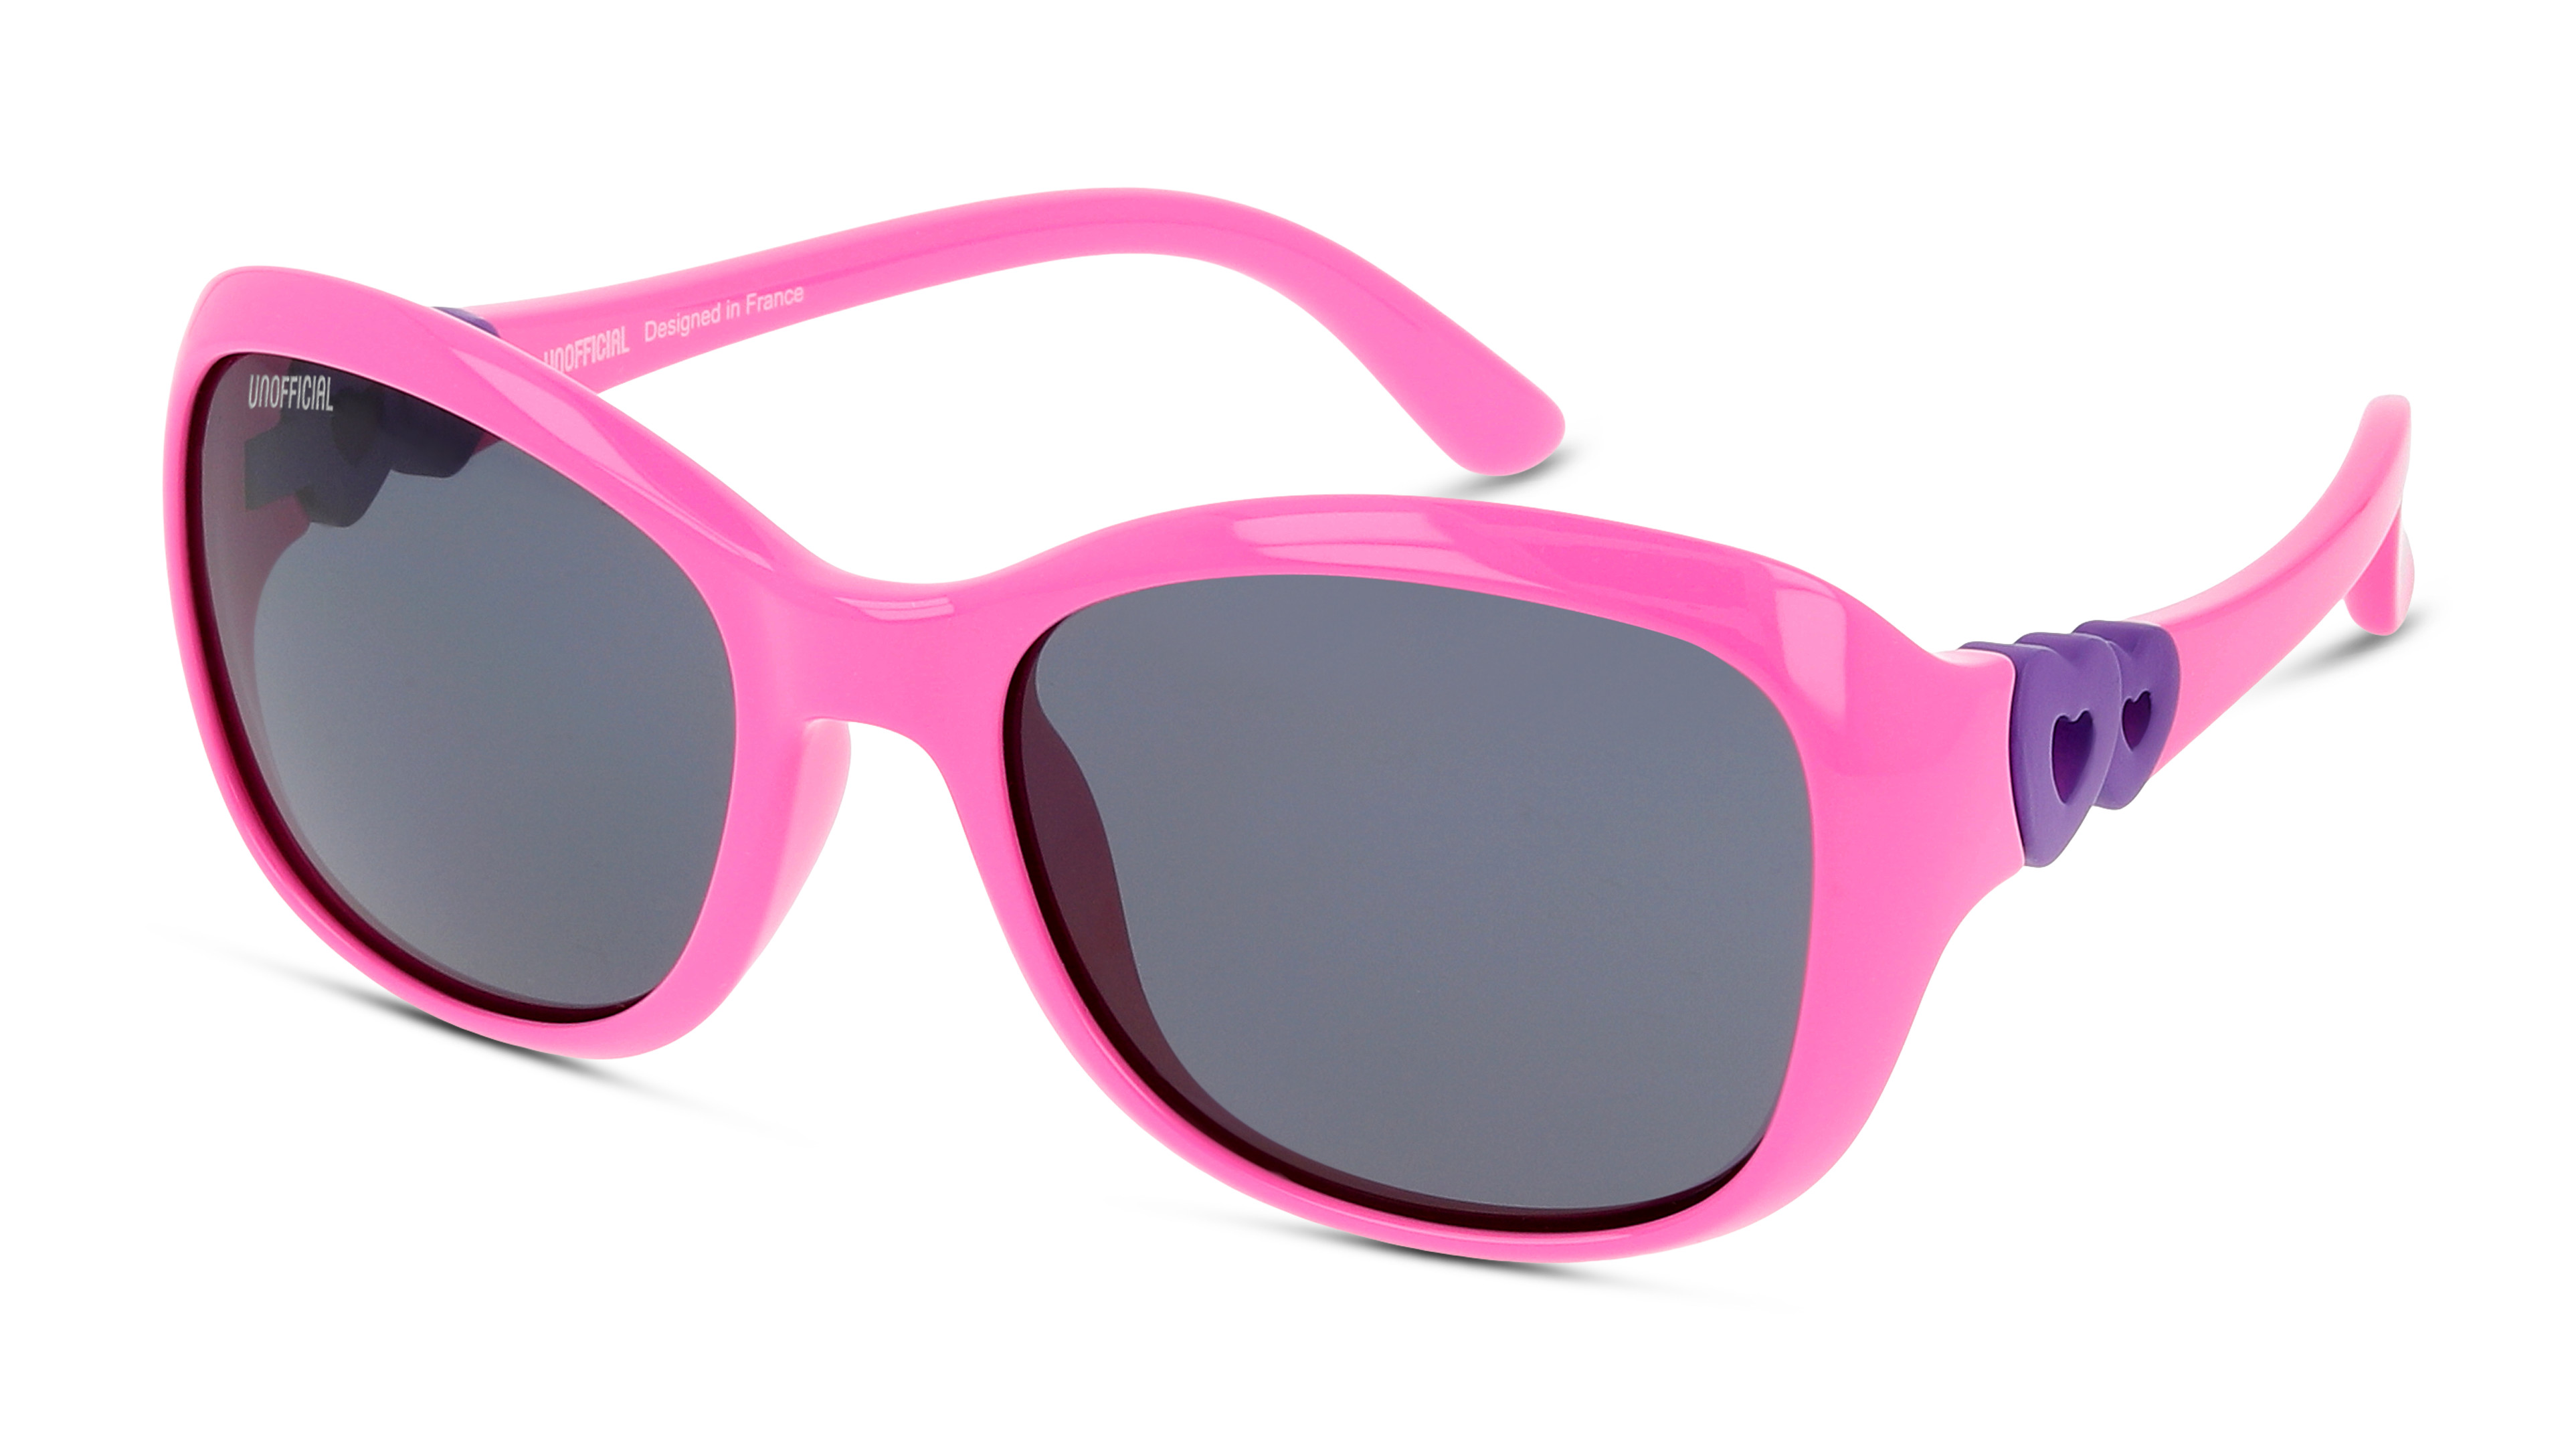 8719154741715-angle-03-unofficial-unsk0002-eyewear-pink-violet